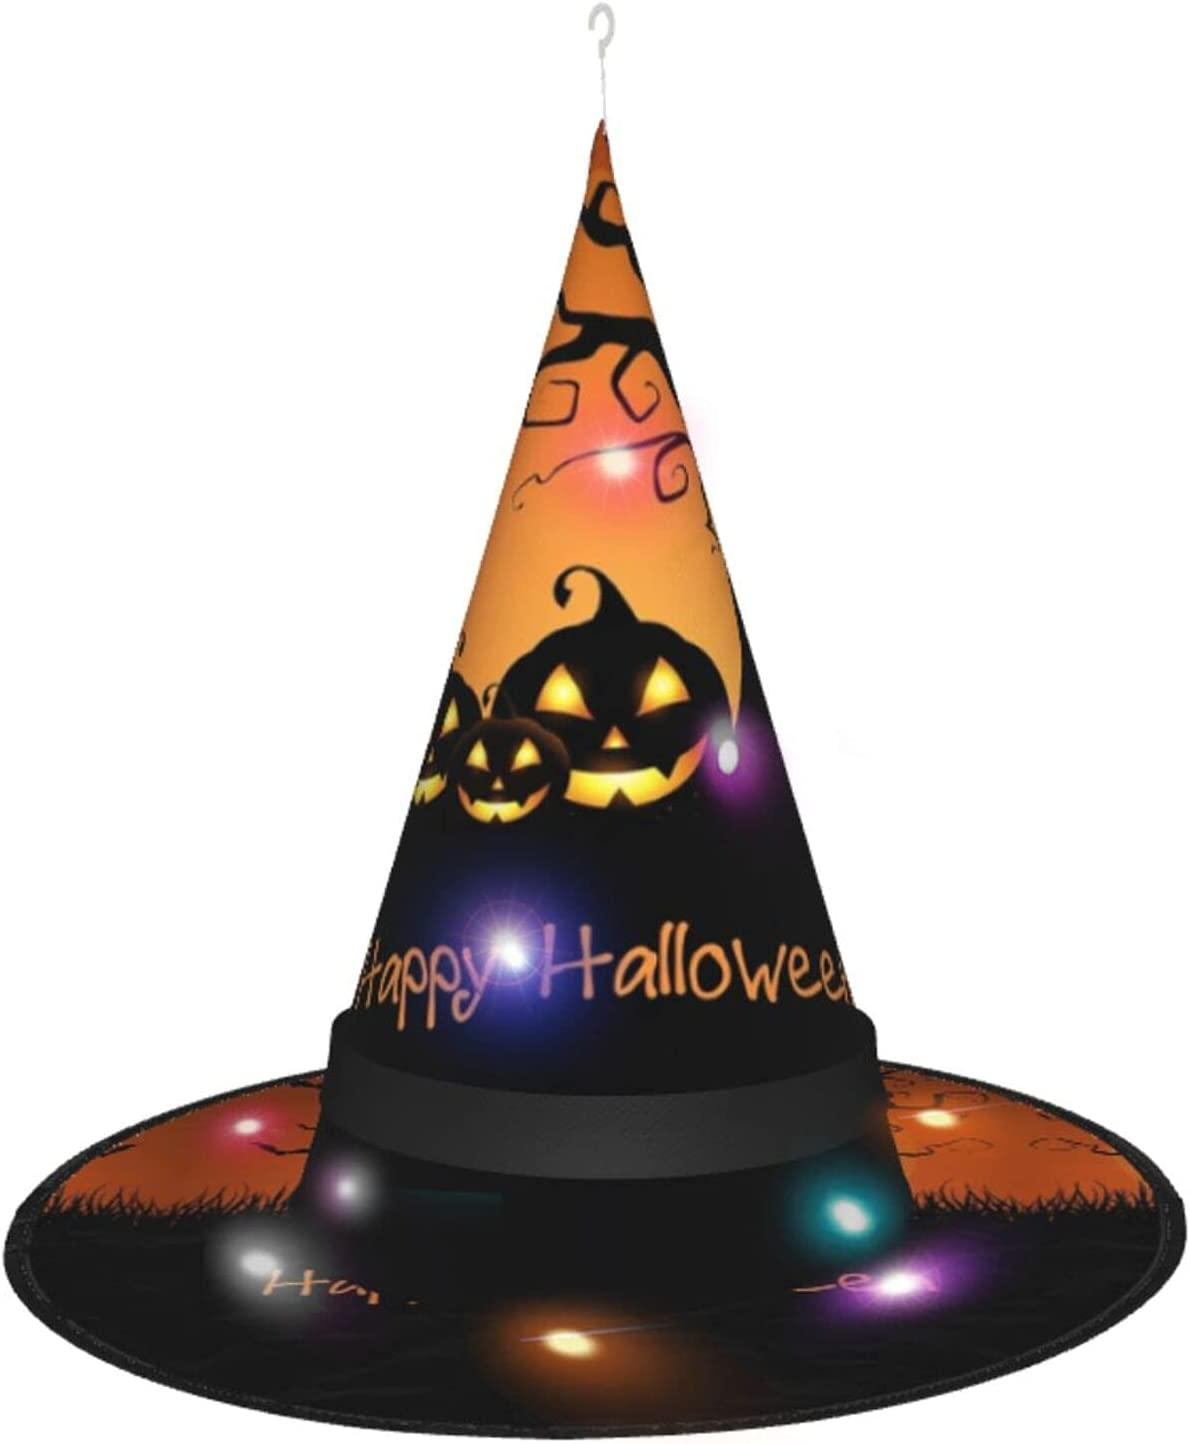 New York Special price Mall Halloween Witch Hat Pumpkin Costume Accessory Hallowee